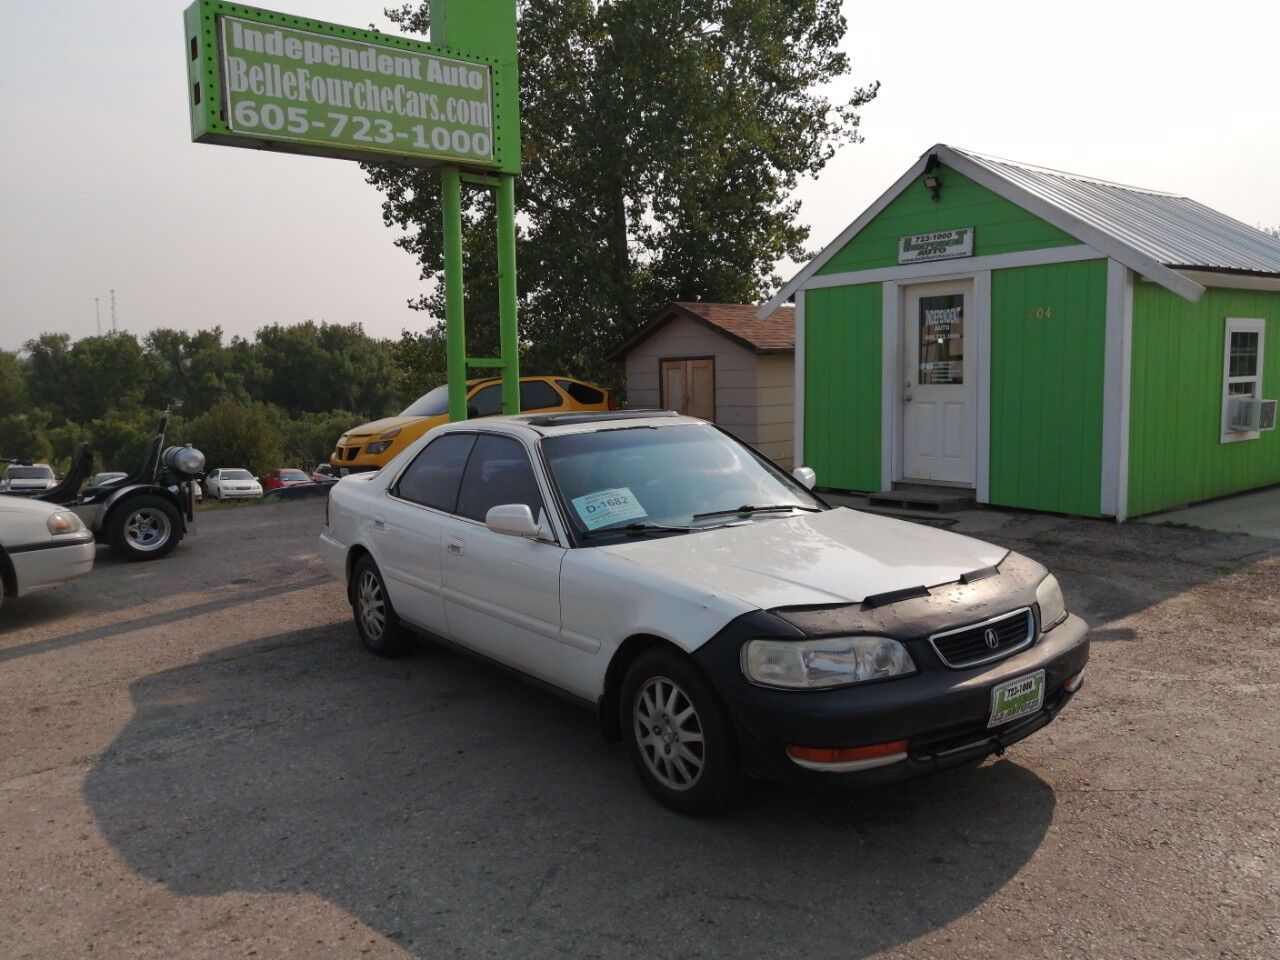 1998 Acura TL 2.5 | Belle Fourche, SD, Cayman White Pearl Metallic (White), Front Wheel